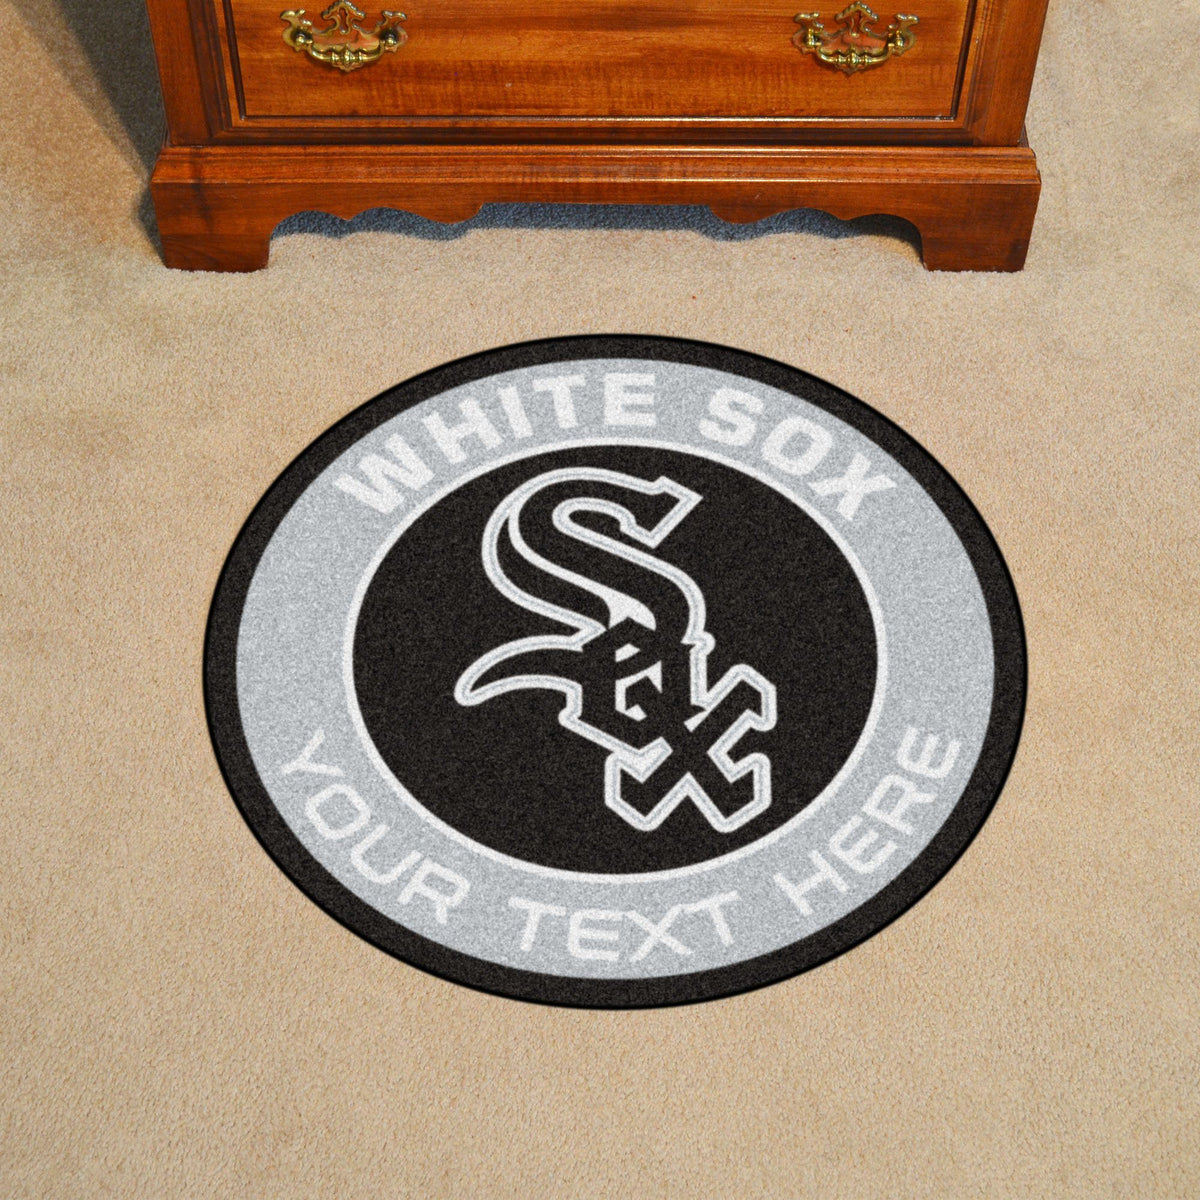 MLB Personalized Roundel Mat Personalized Roundel Mat Fan Mats Chicago White Sox